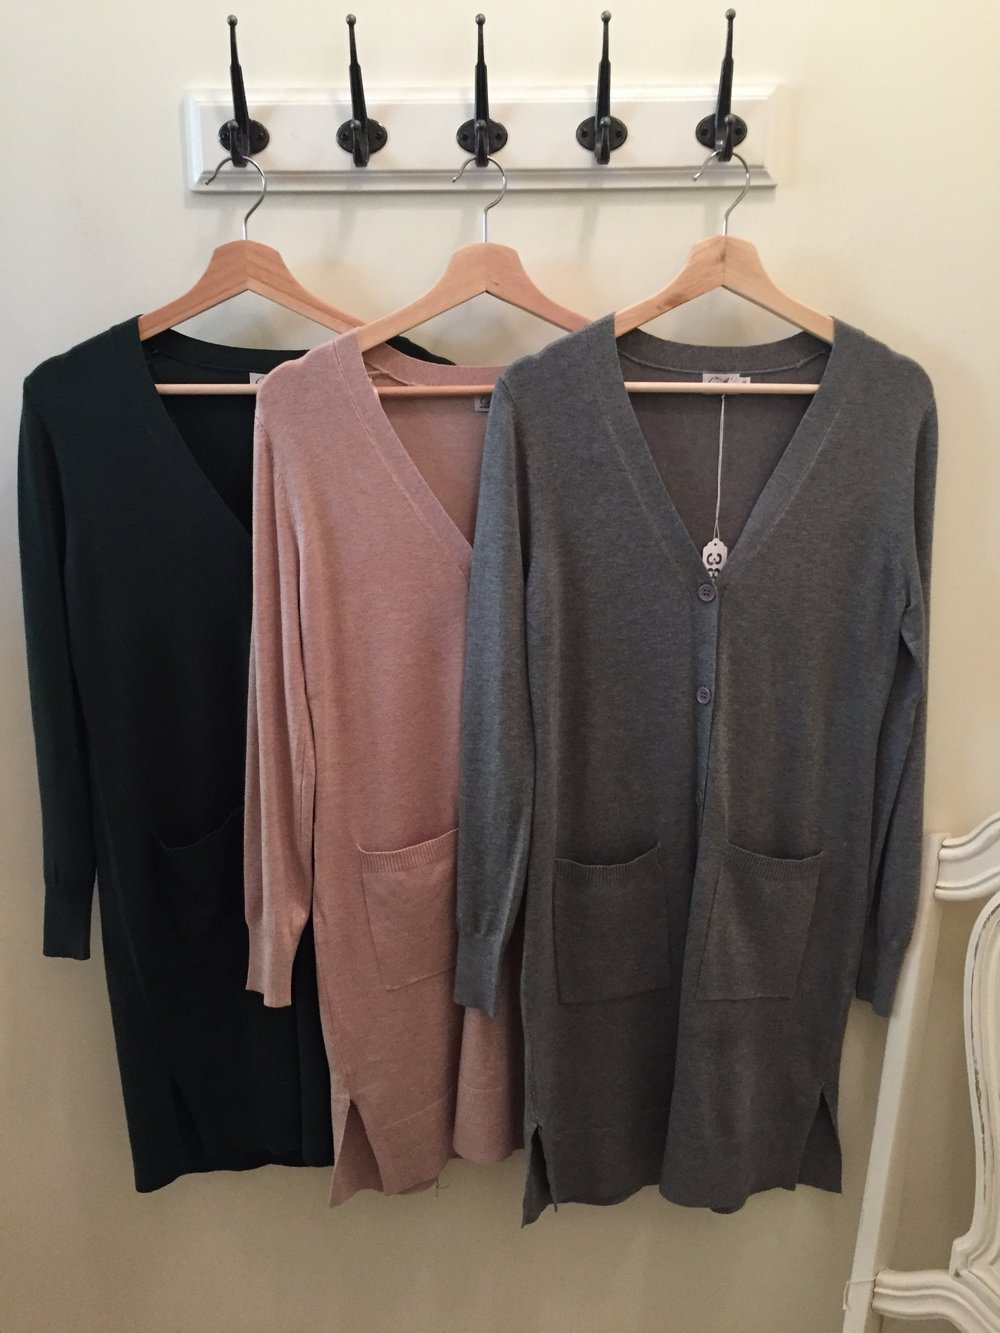 New Cielo Cardigans in various styles/ colors